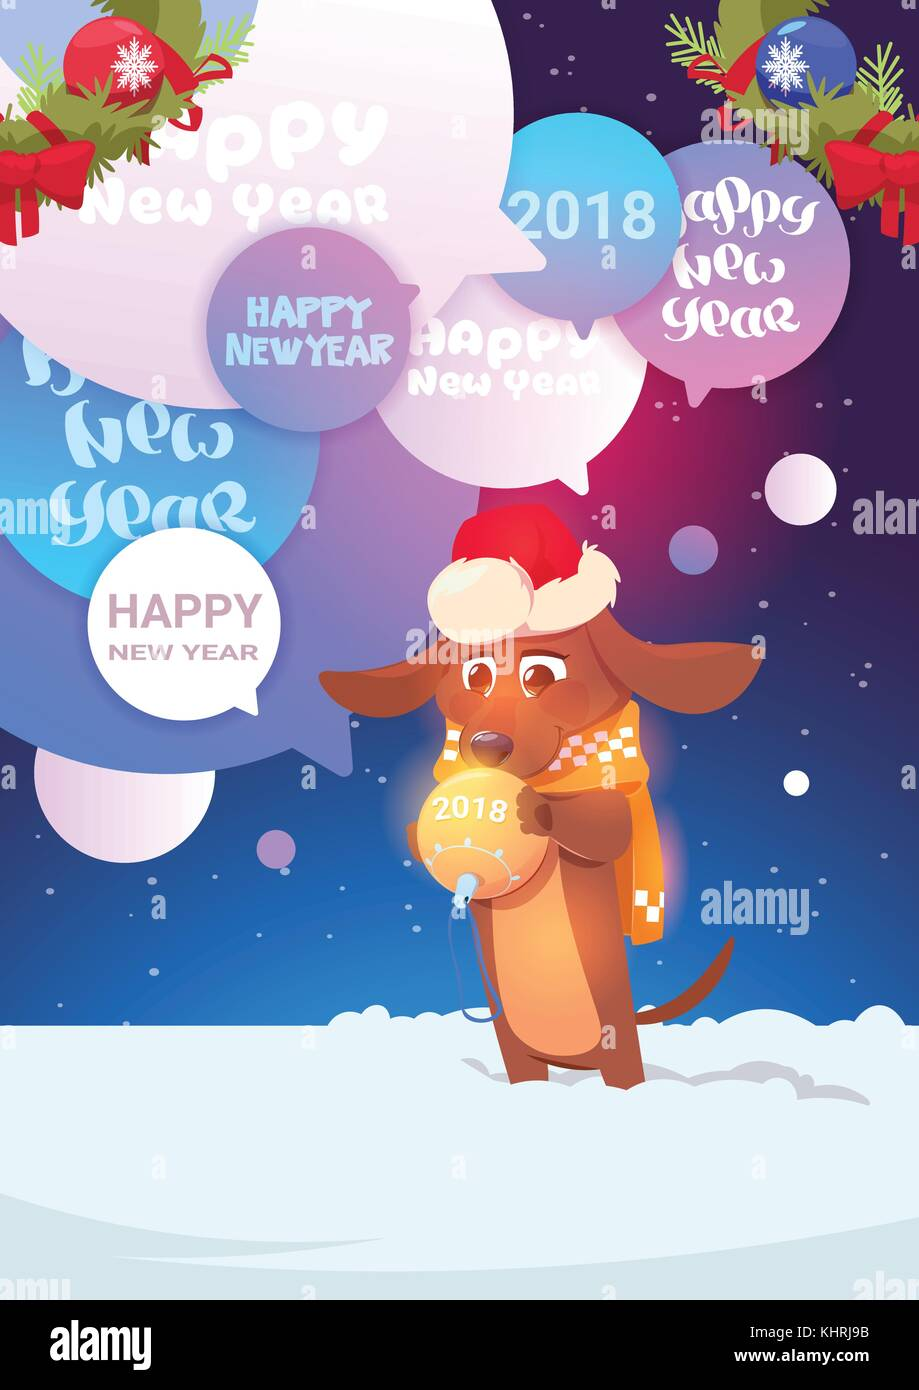 Dog In Santa Hat Over Chat Bubble With Happy New Year 2018 Messages